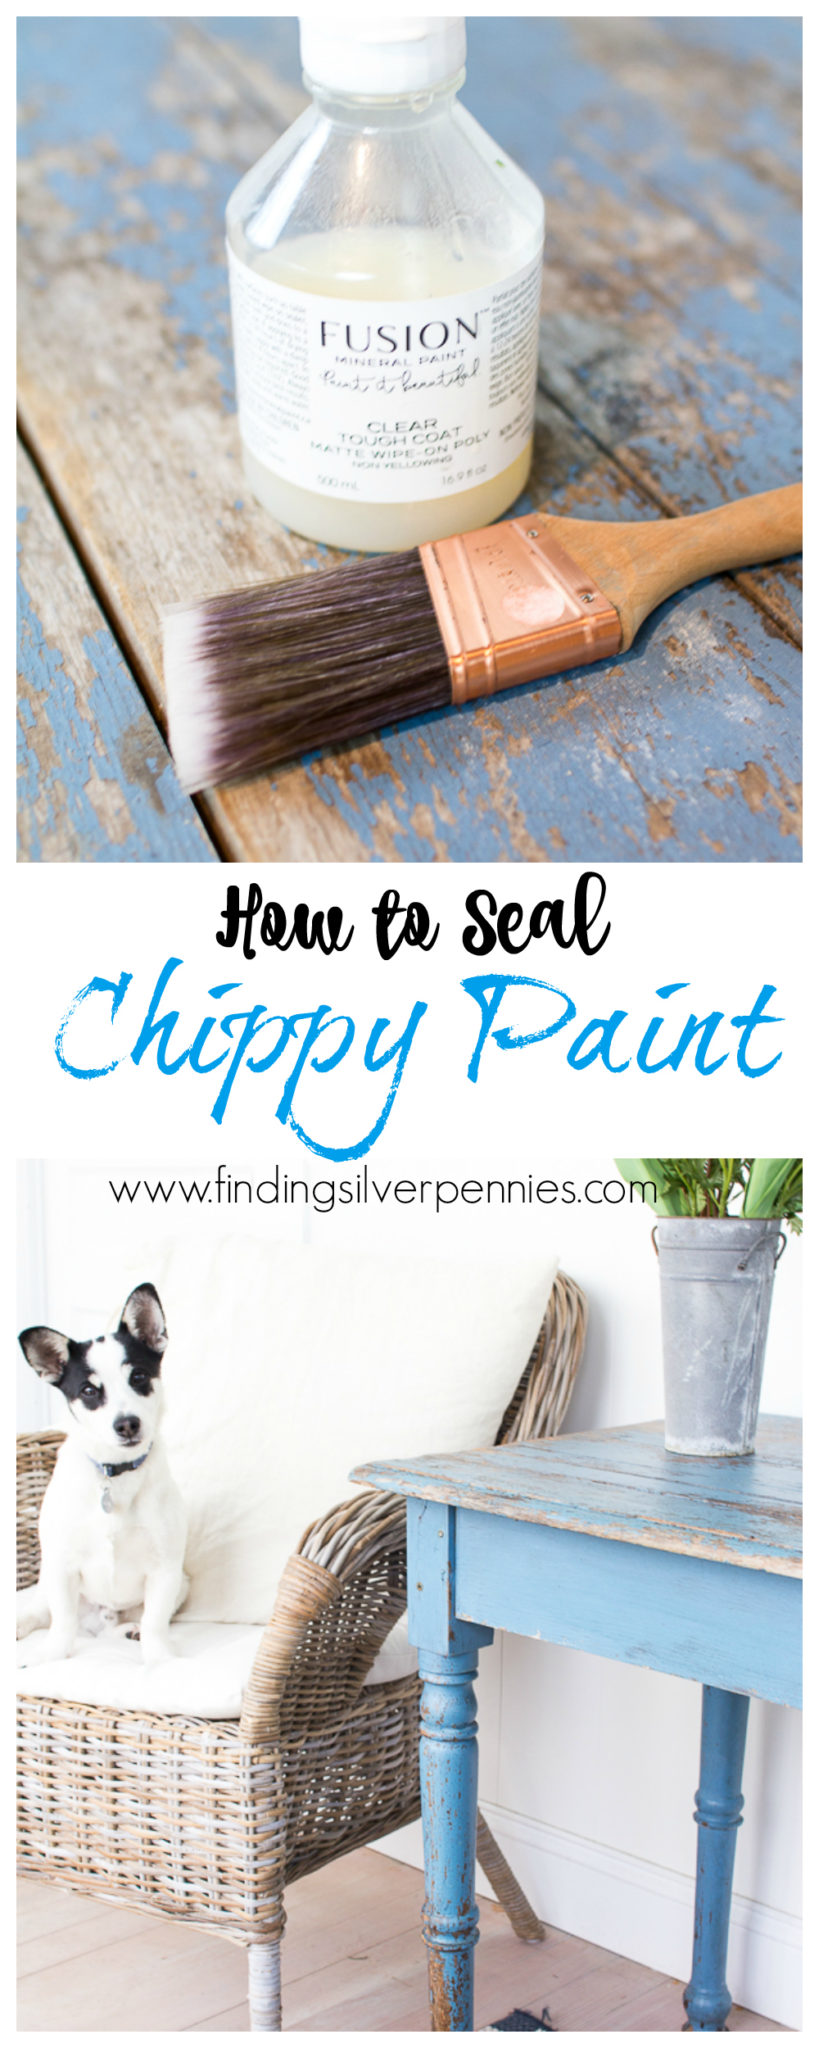 How to Seal Chippy Paint - Top Posts 2017 I Finding Silver Pennies